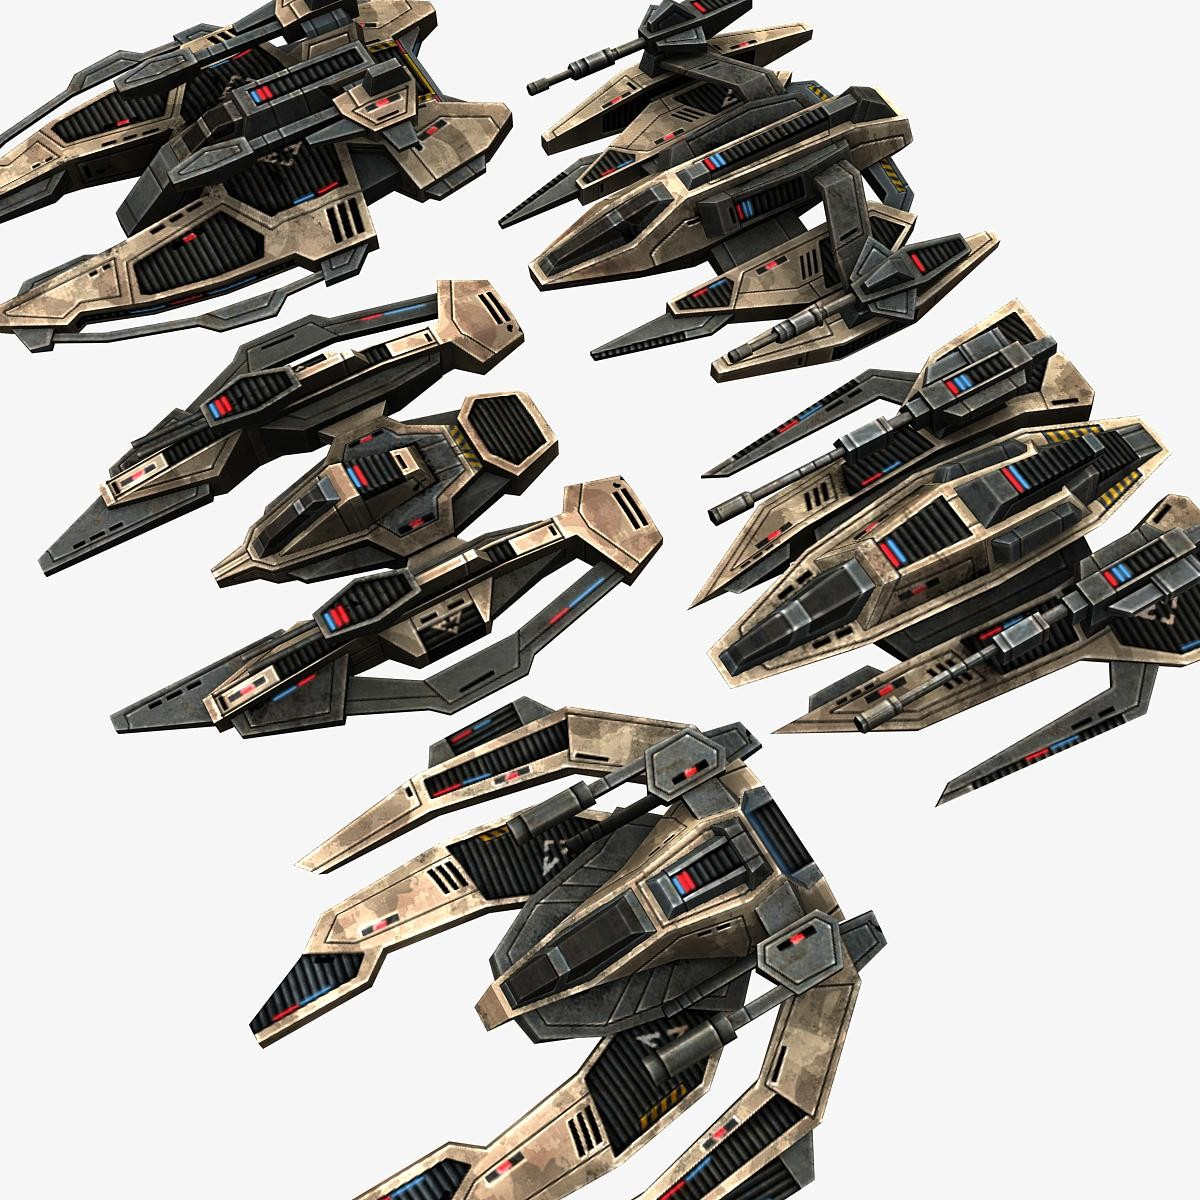 5_military_space_fighters_preview_0.jpg